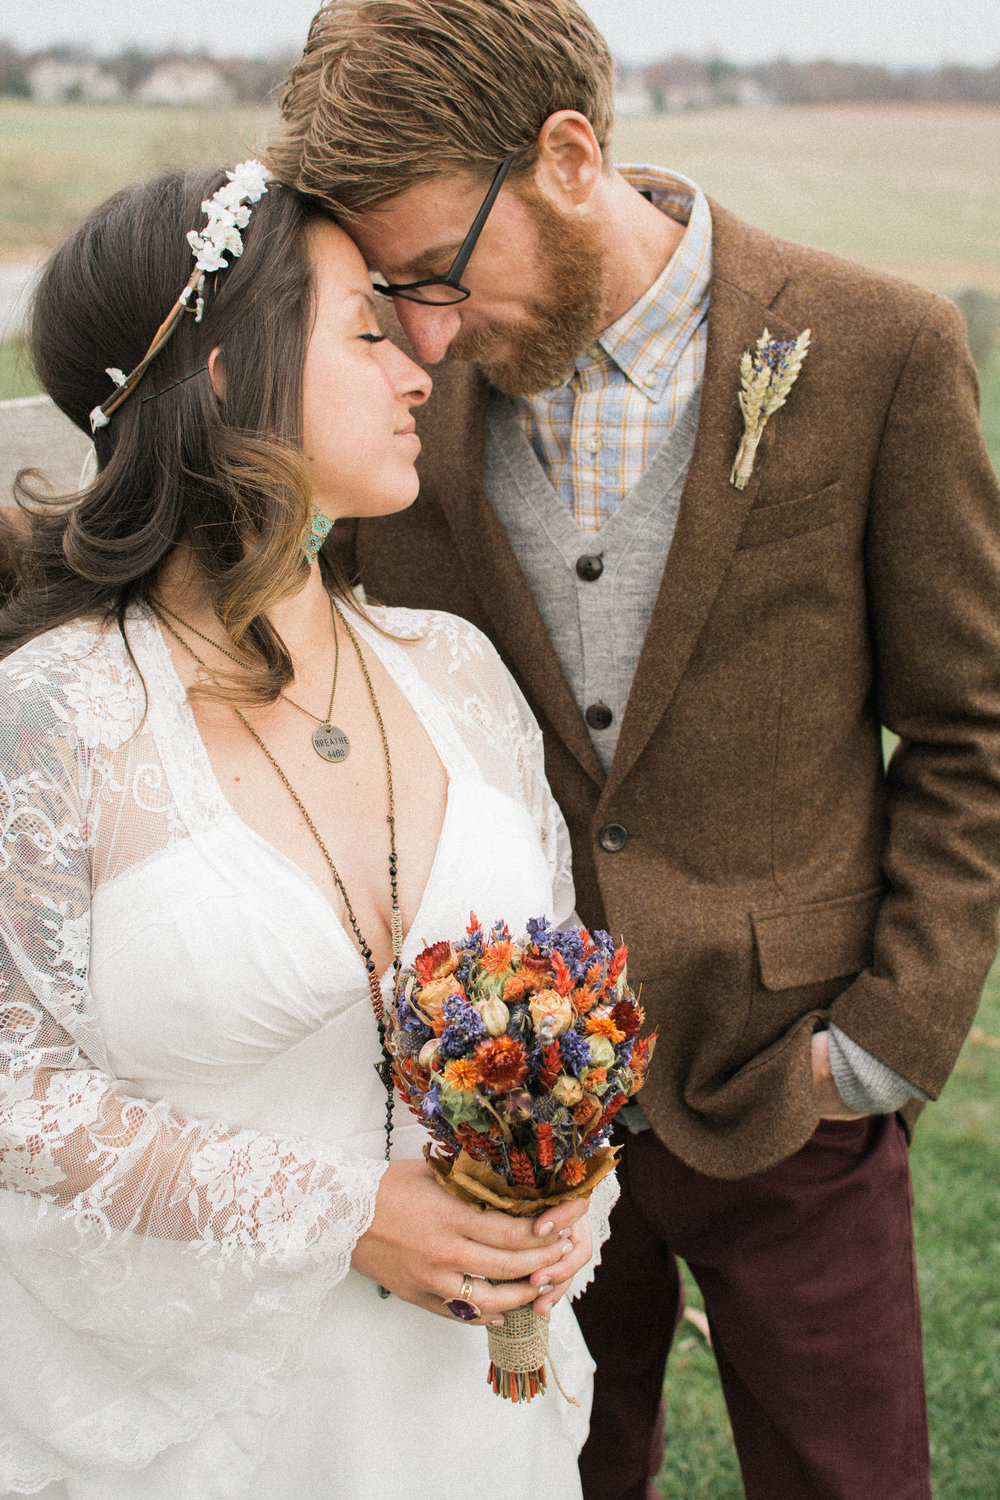 hippy chic bride and groom embracing photo